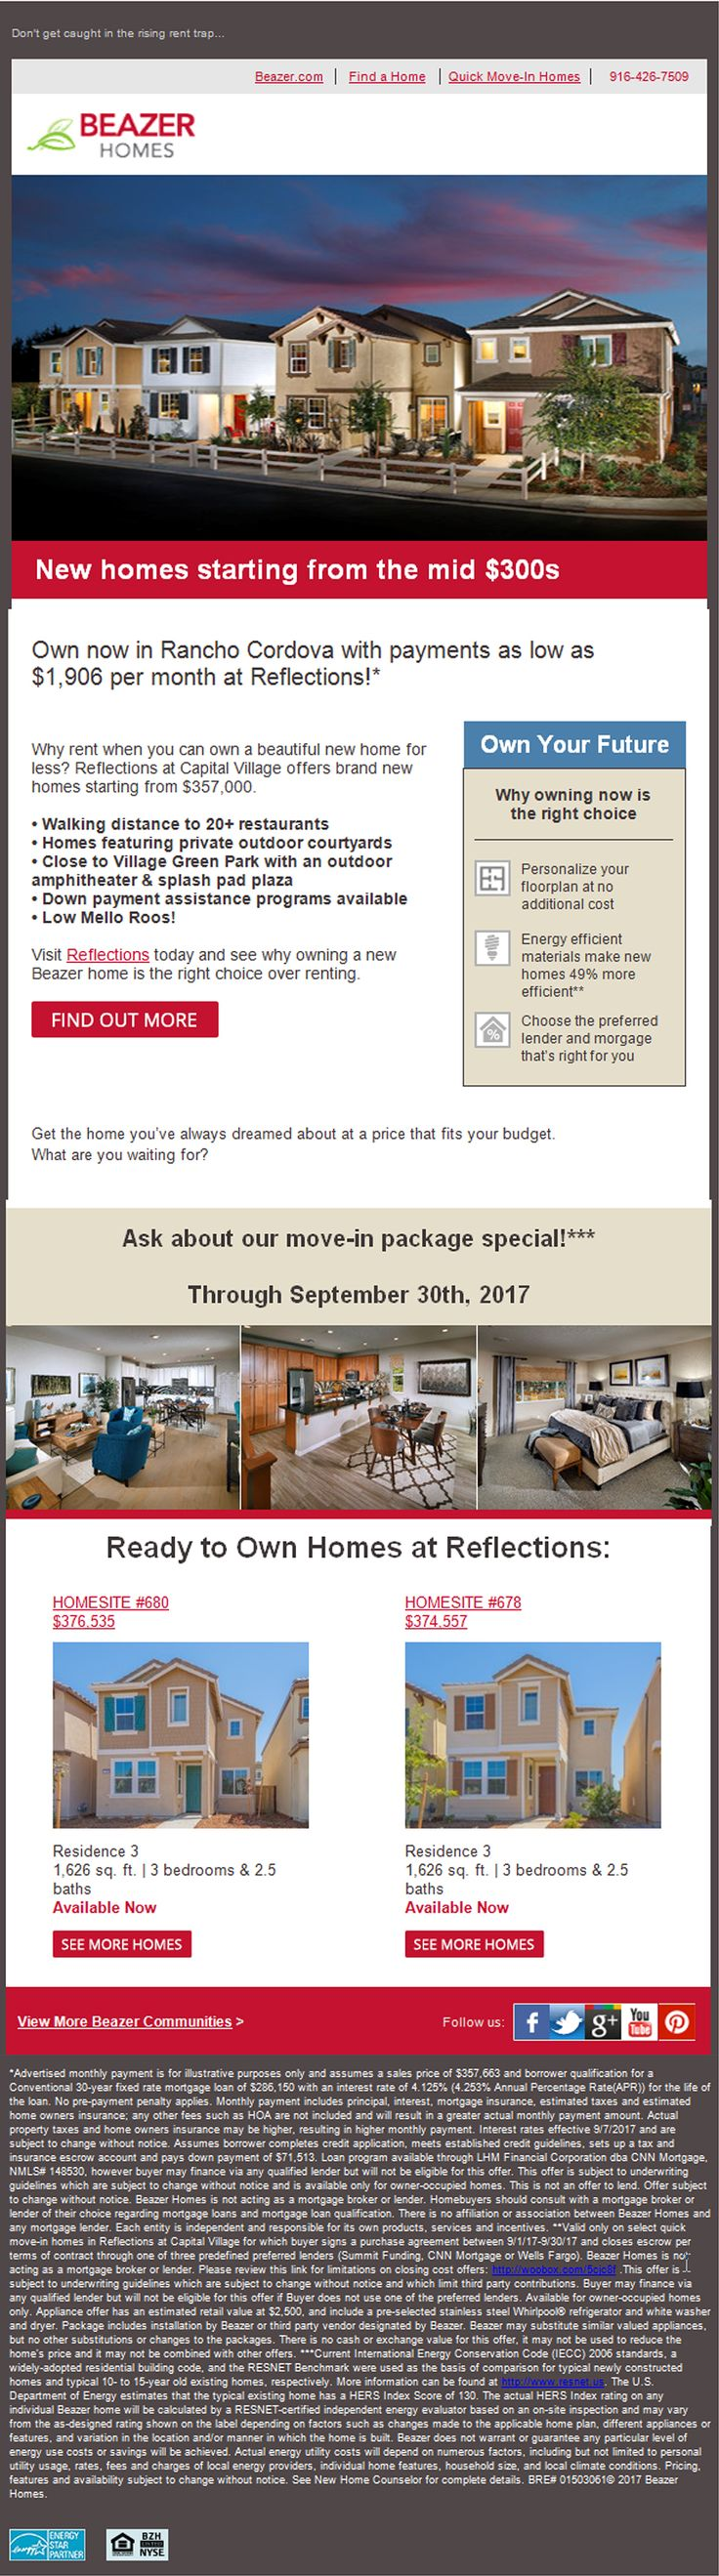 New Homes for Sale in Rancho Cordova, California  Say goodbye to rent, and hello to a Beazer home!  Private Outdoor Courtyards  |  Close to Village Green Park  |  Move-In Package Special  https://www.beazer.com/sacramento-CA/reflections-at-capital-village